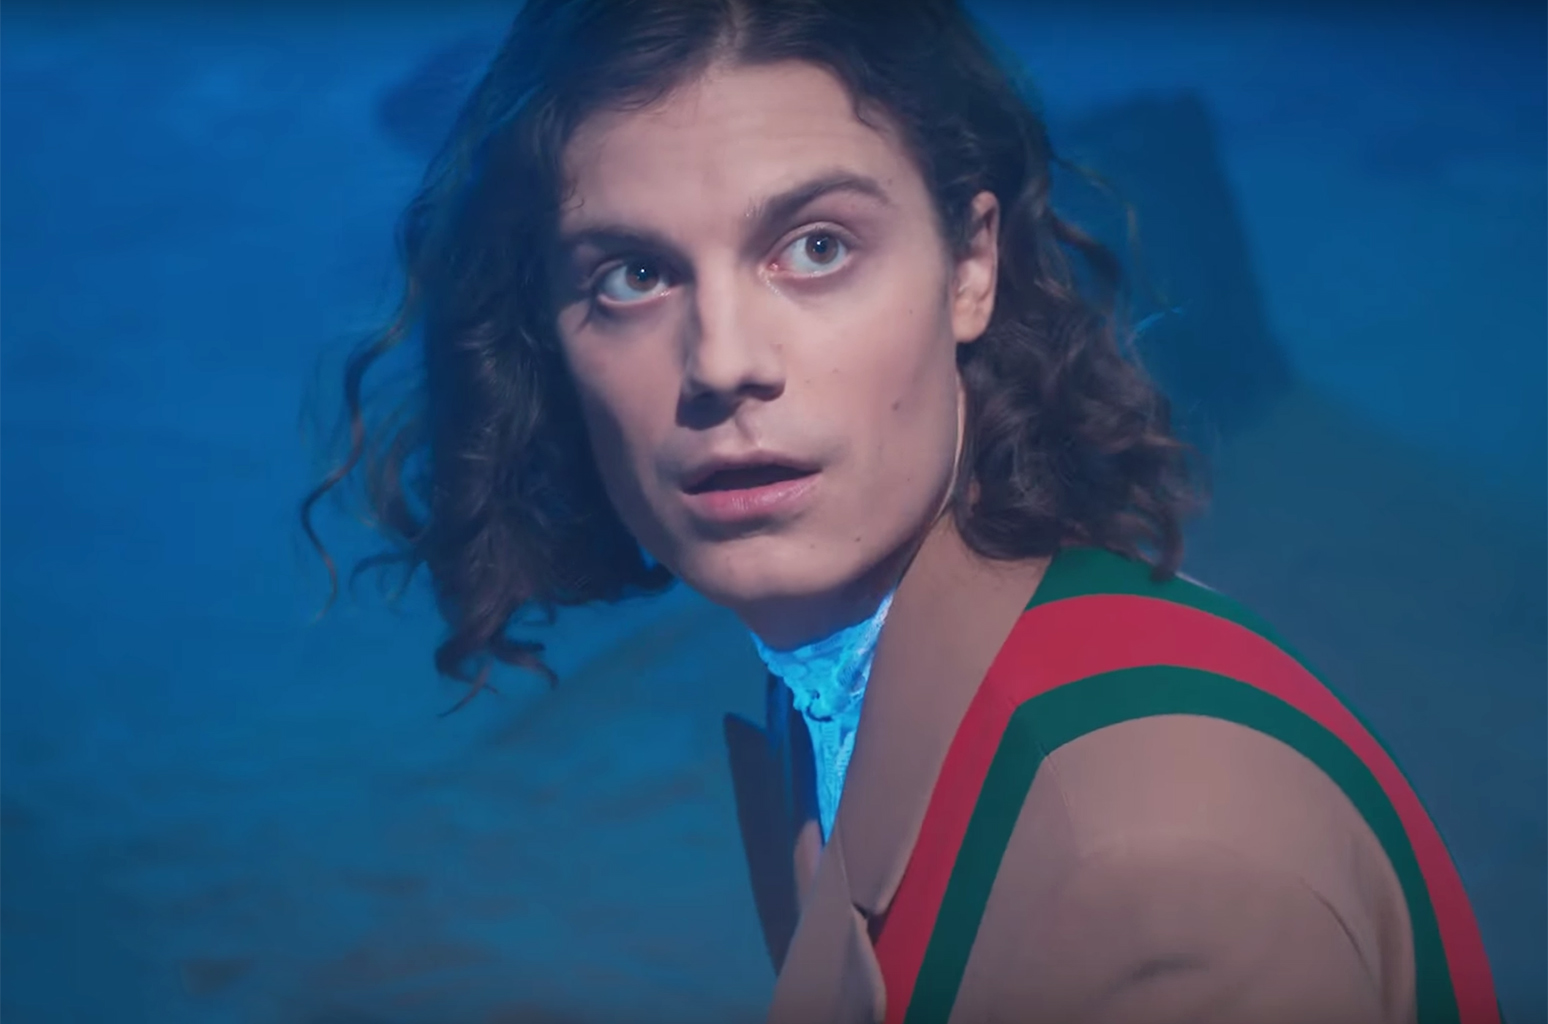 """BØRNS and Lana Del Ray Form Dream Pairing on """"God Save Our Young Blood"""""""